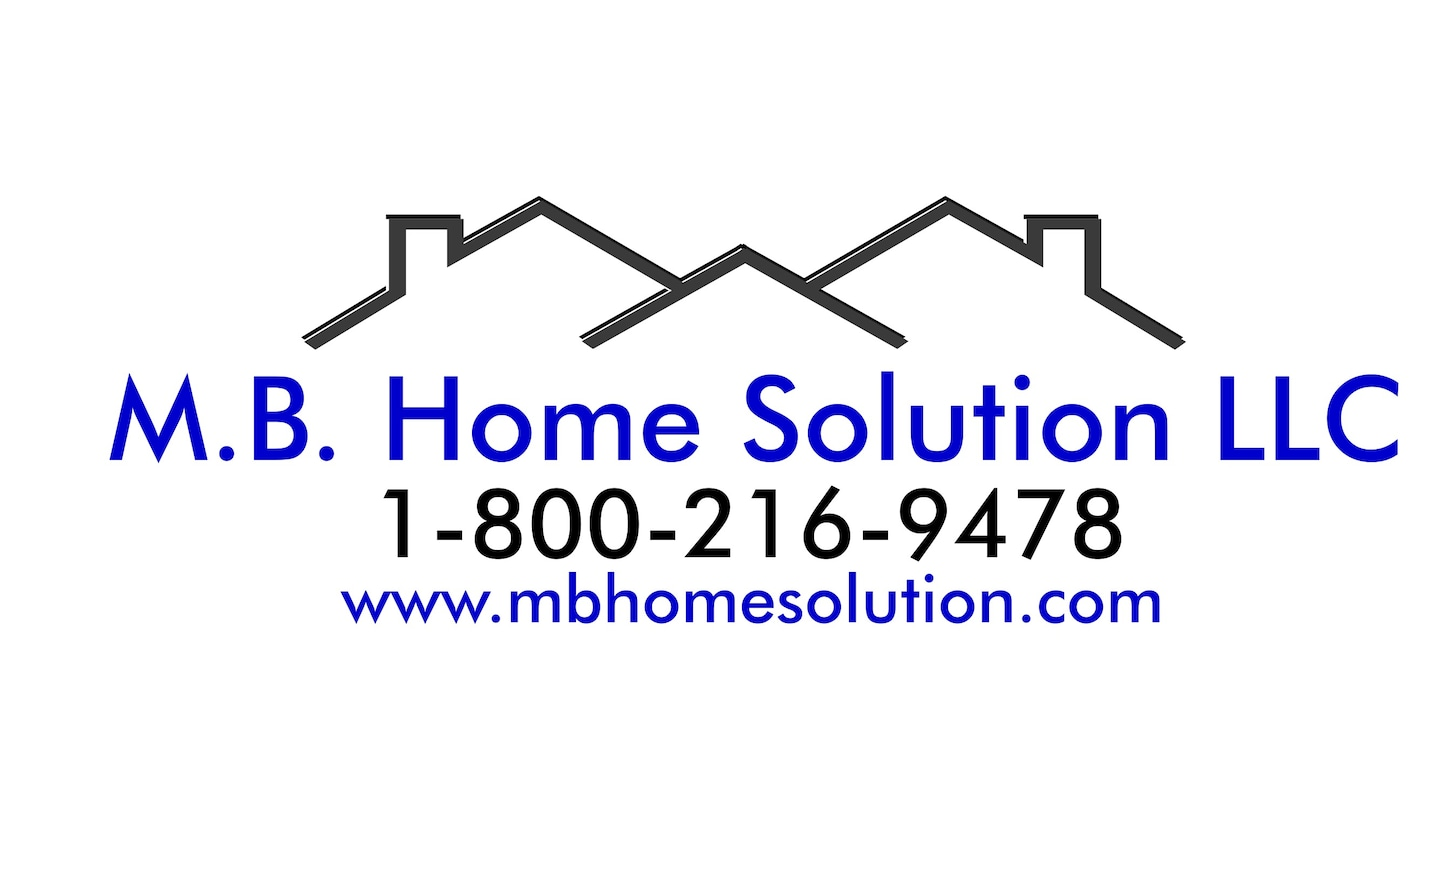 M.B. Home Solution LLC